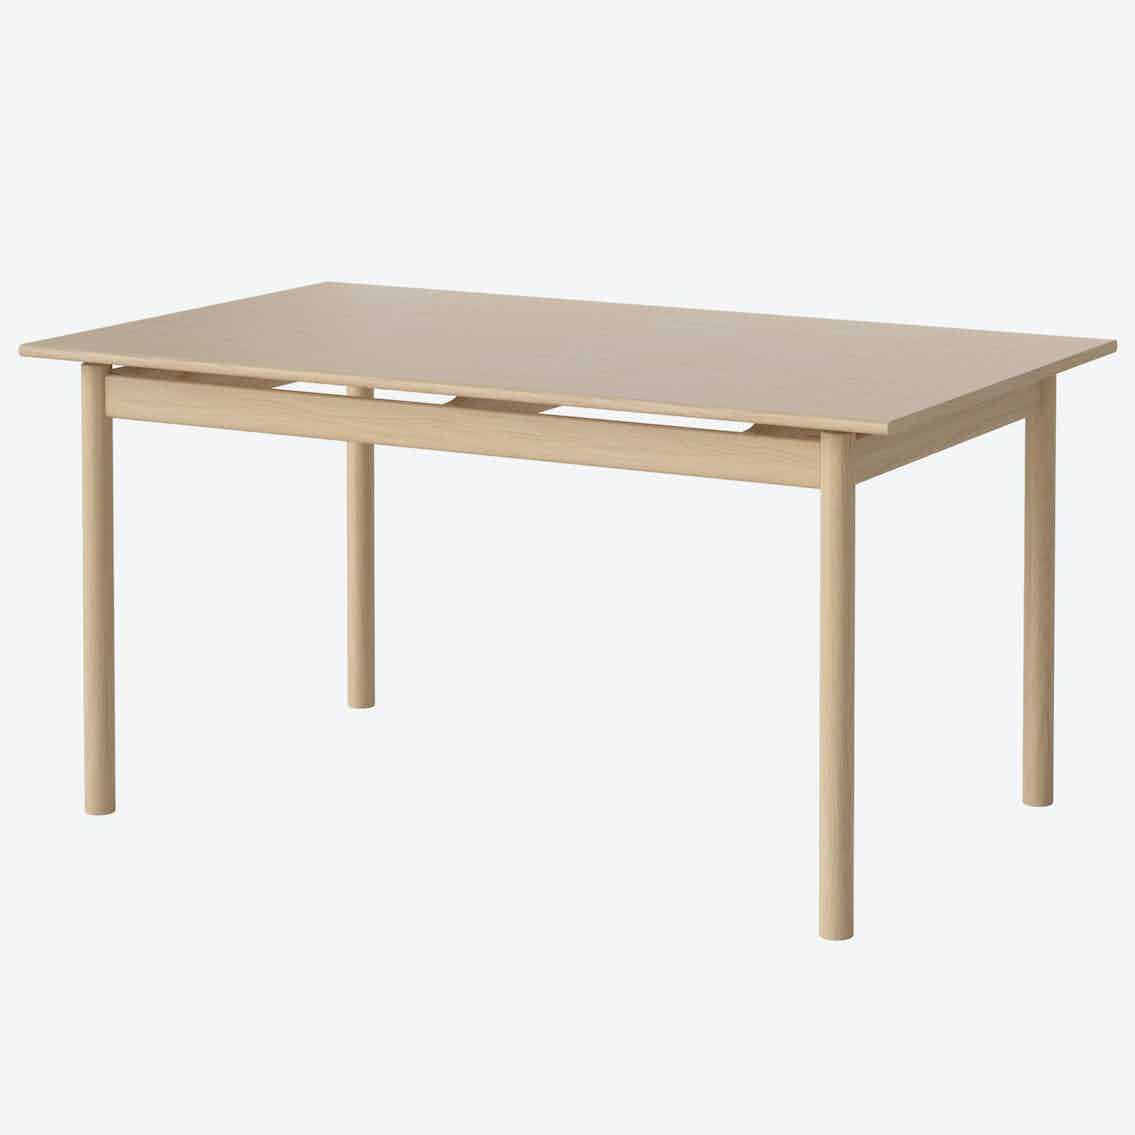 Bolia loyal dining table thumbnail haute living